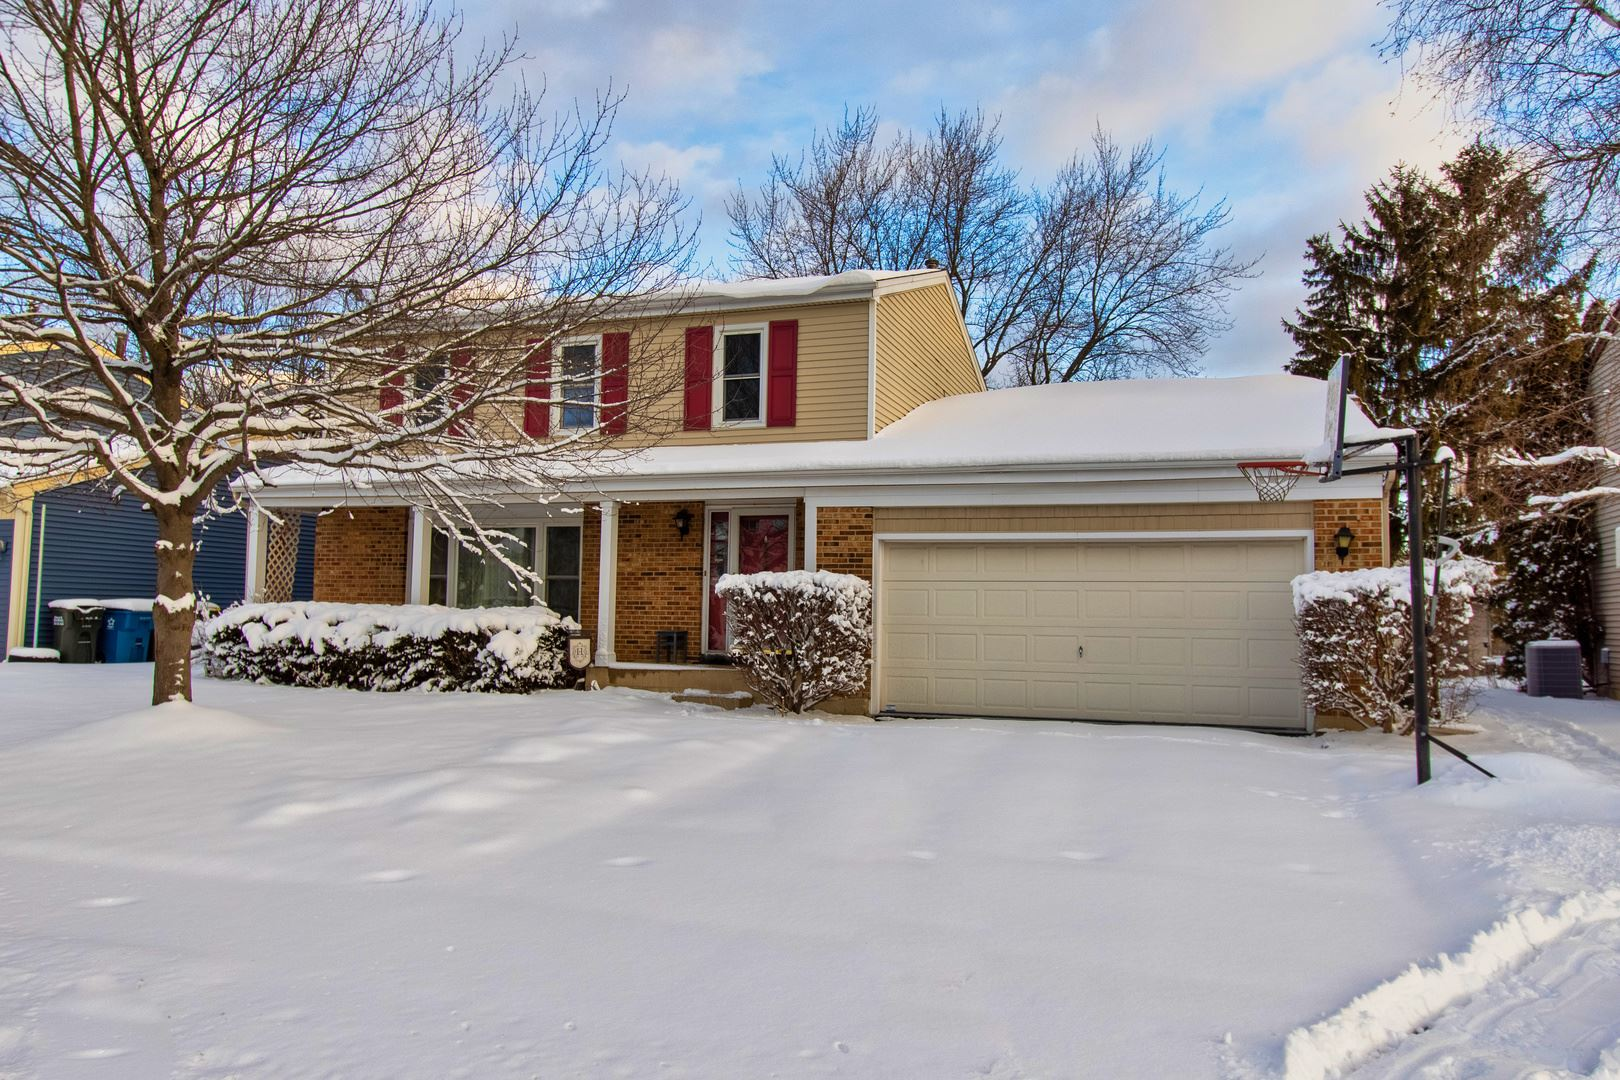 77 W End Road, Roselle, IL 60172 - #: 10973412